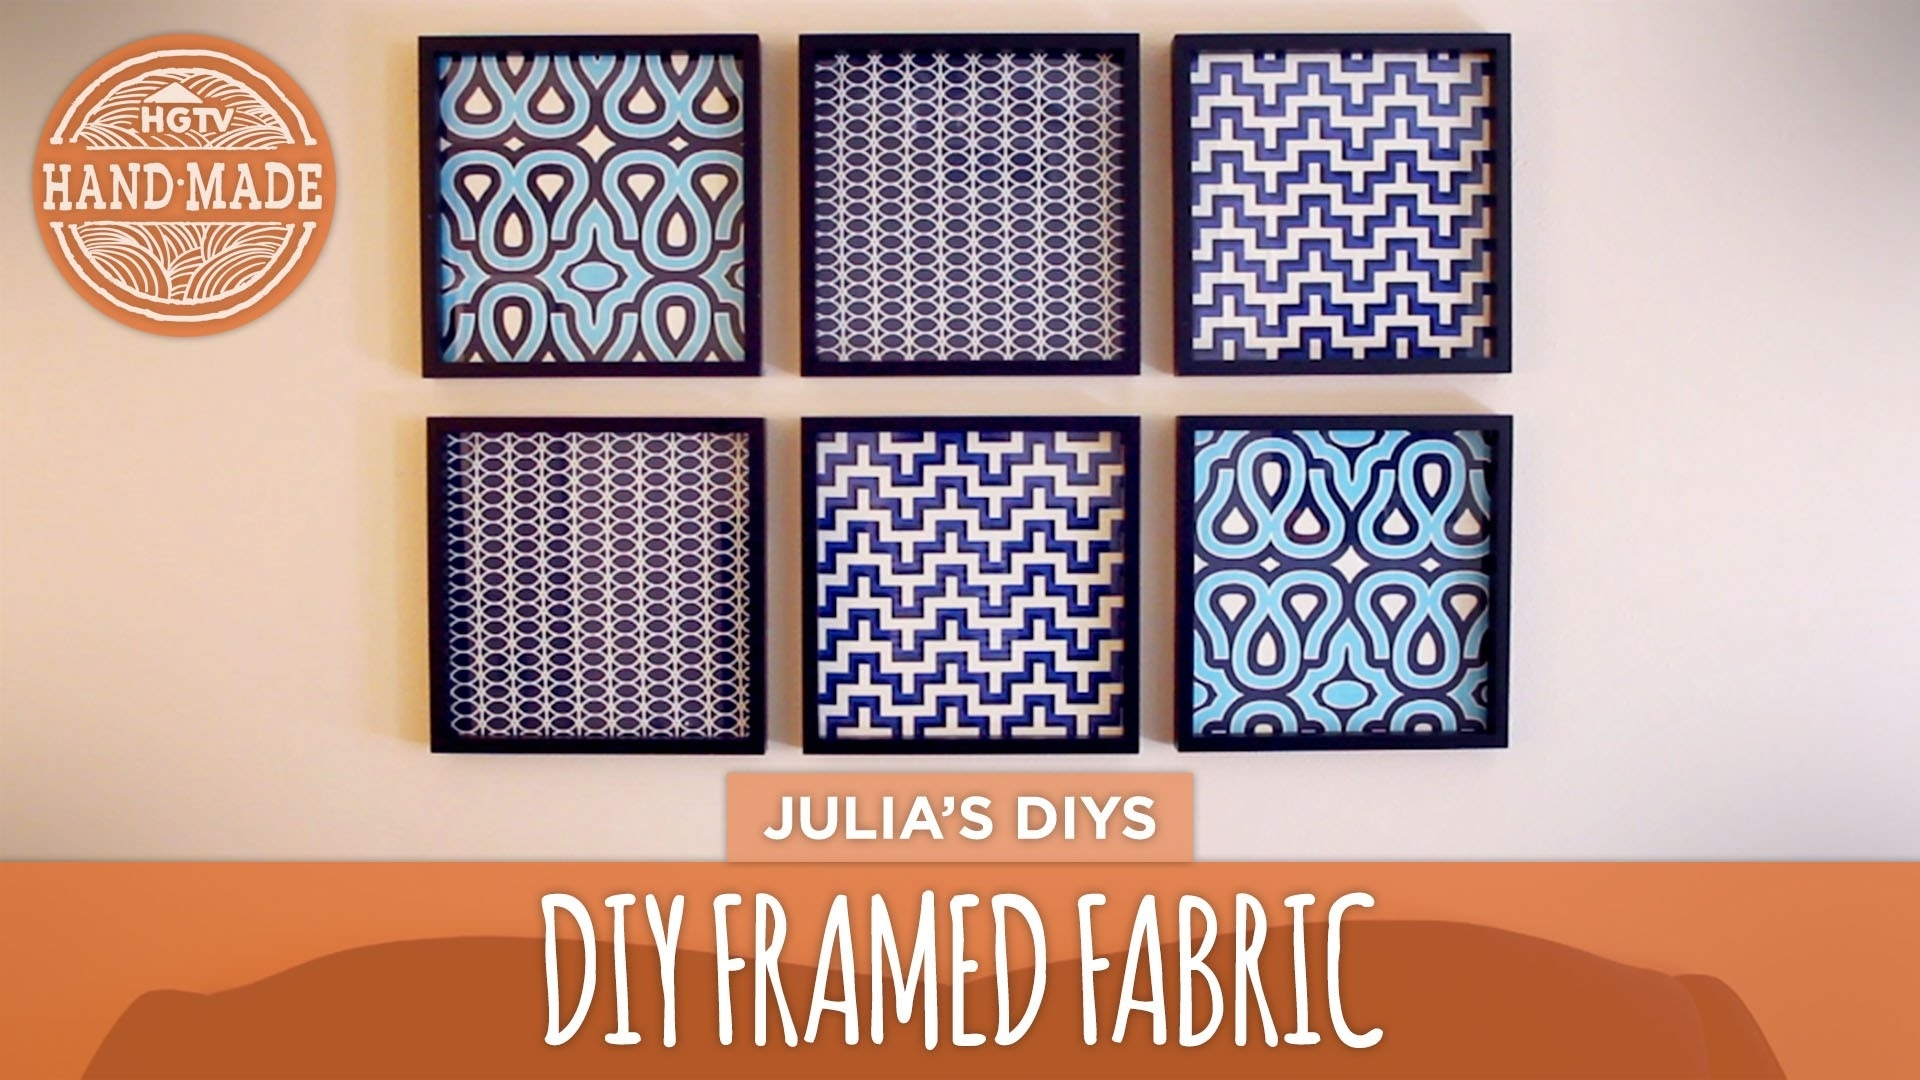 Diy Framed Fabric Gallery Wall – Hgtv Handmade – Youtube With Current Diy Fabric Cross Wall Art (View 3 of 15)